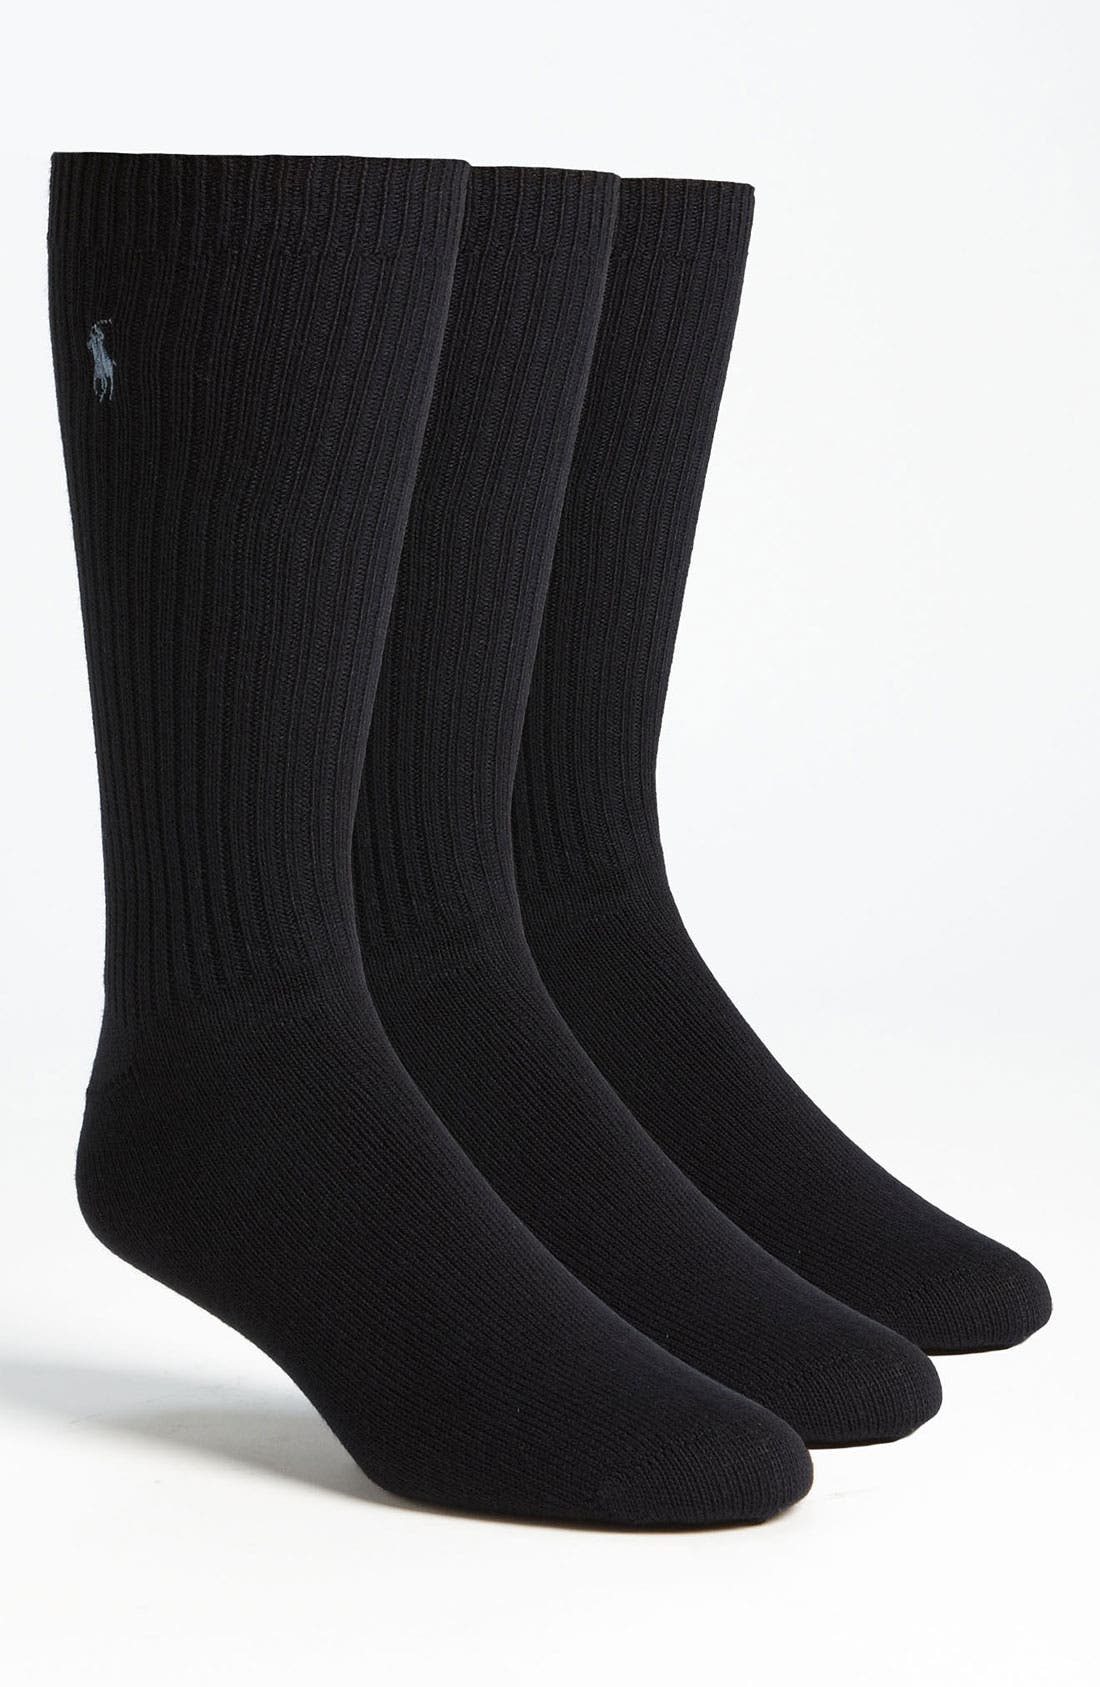 Main Image - Polo Ralph Lauren Ribbed Crew Socks (3-Pack)